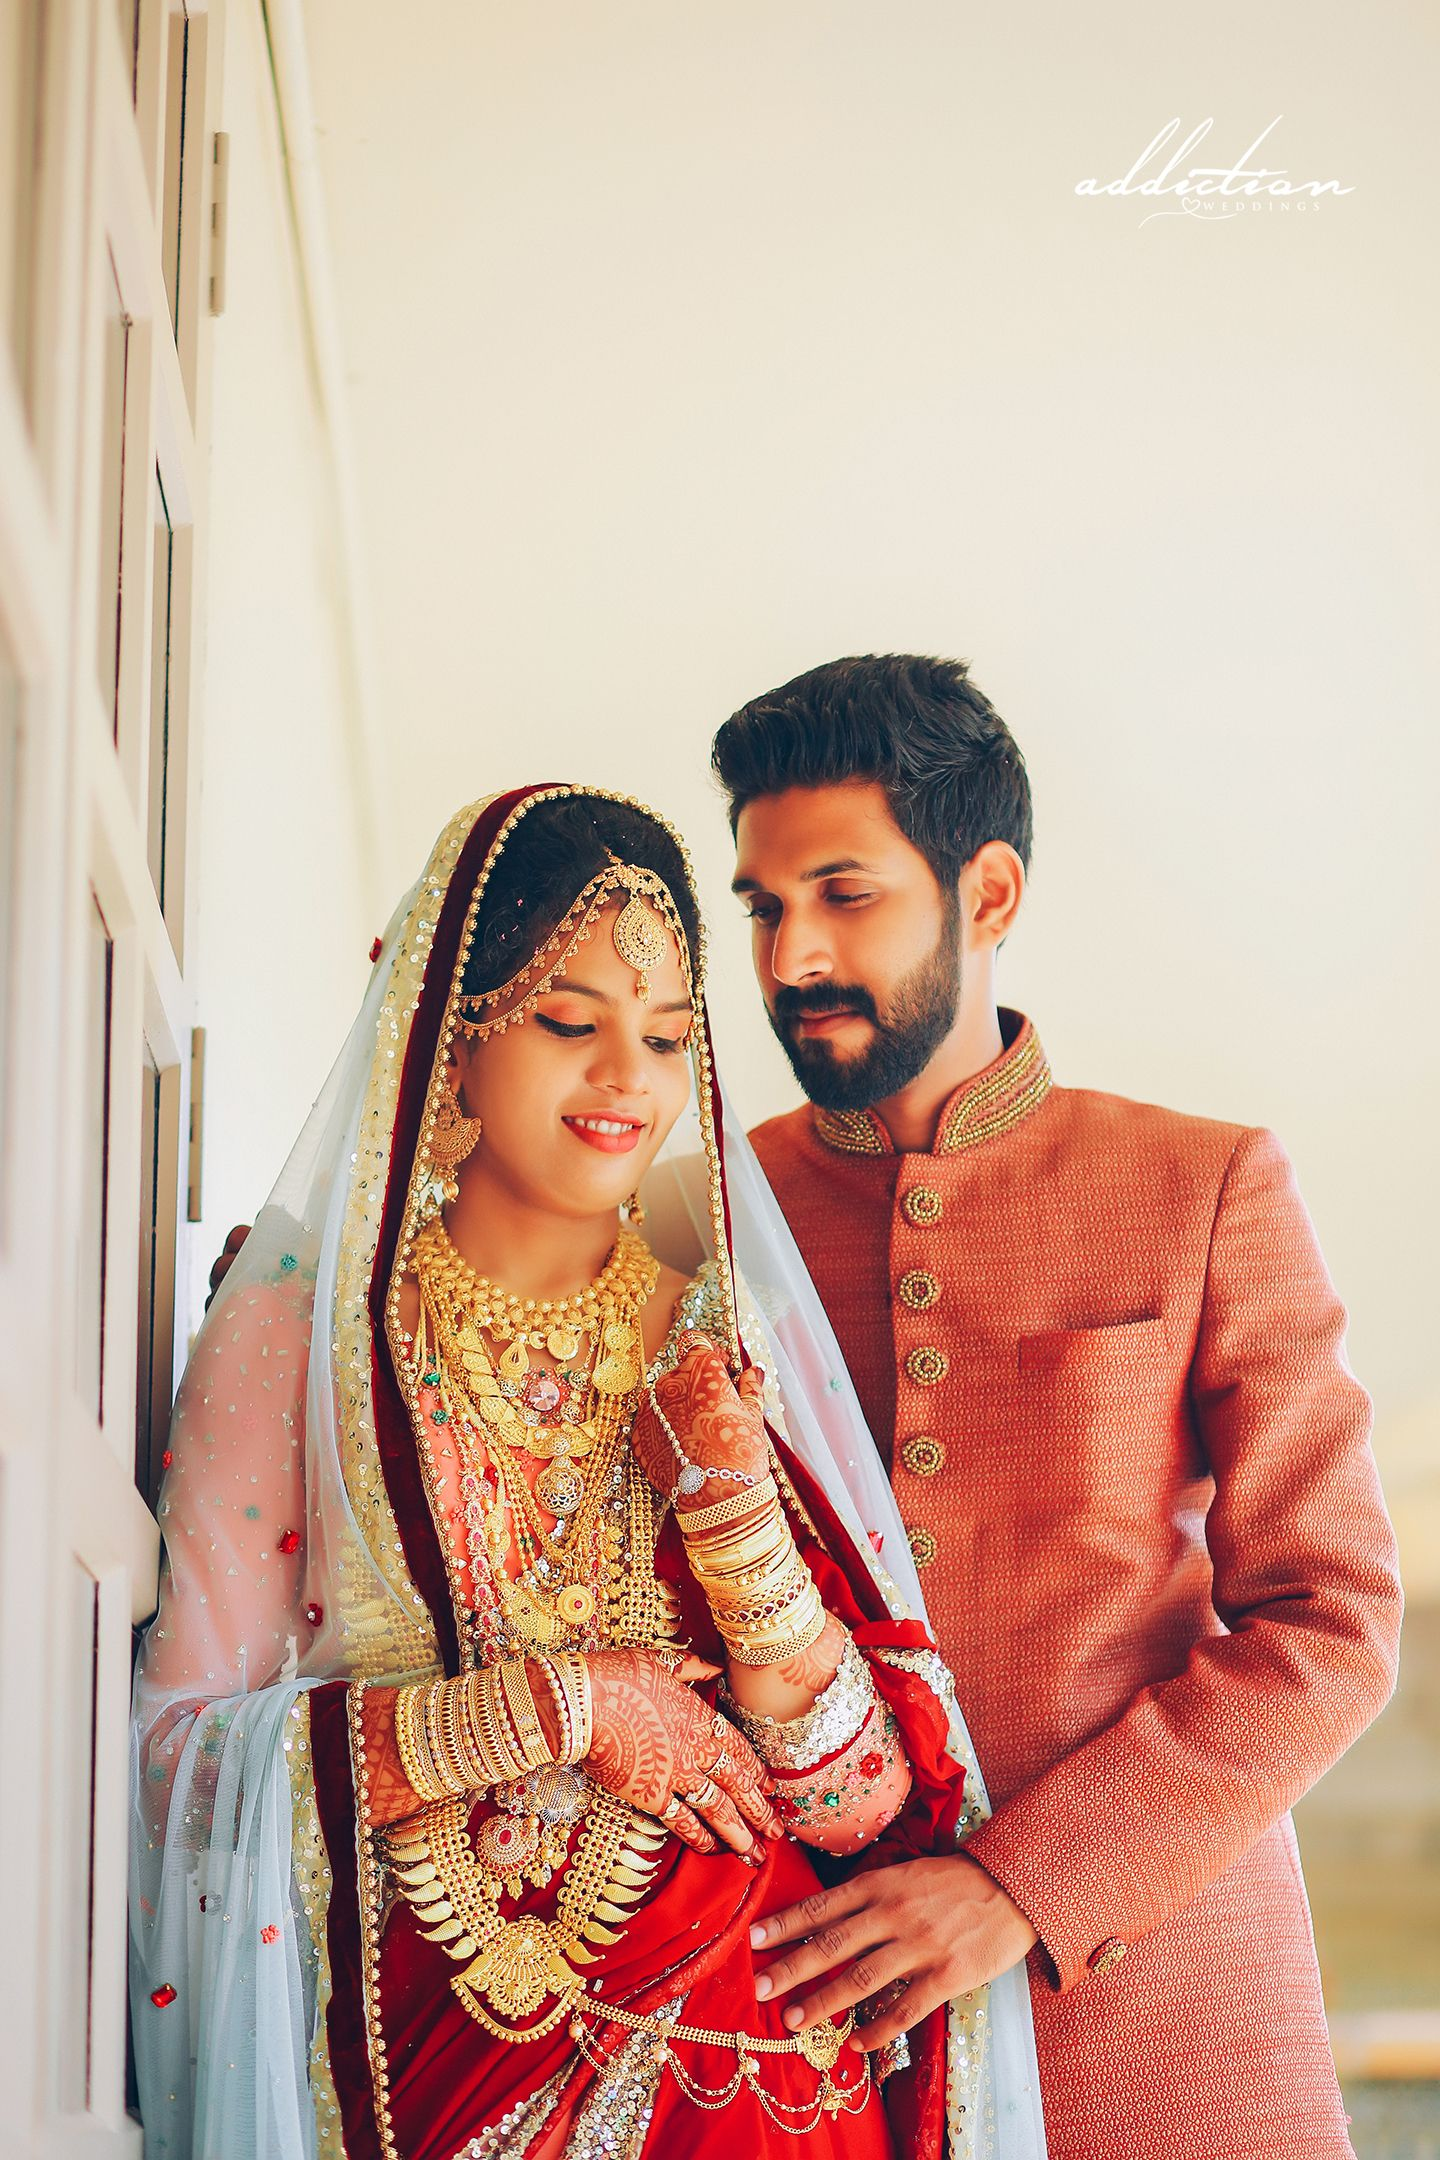 Kerala Muslim Wedding Cute Couple Weddingphotography Keralaweddingphotograph Muslim Wedding Photography Muslim Couple Photography Kerala Wedding Photography